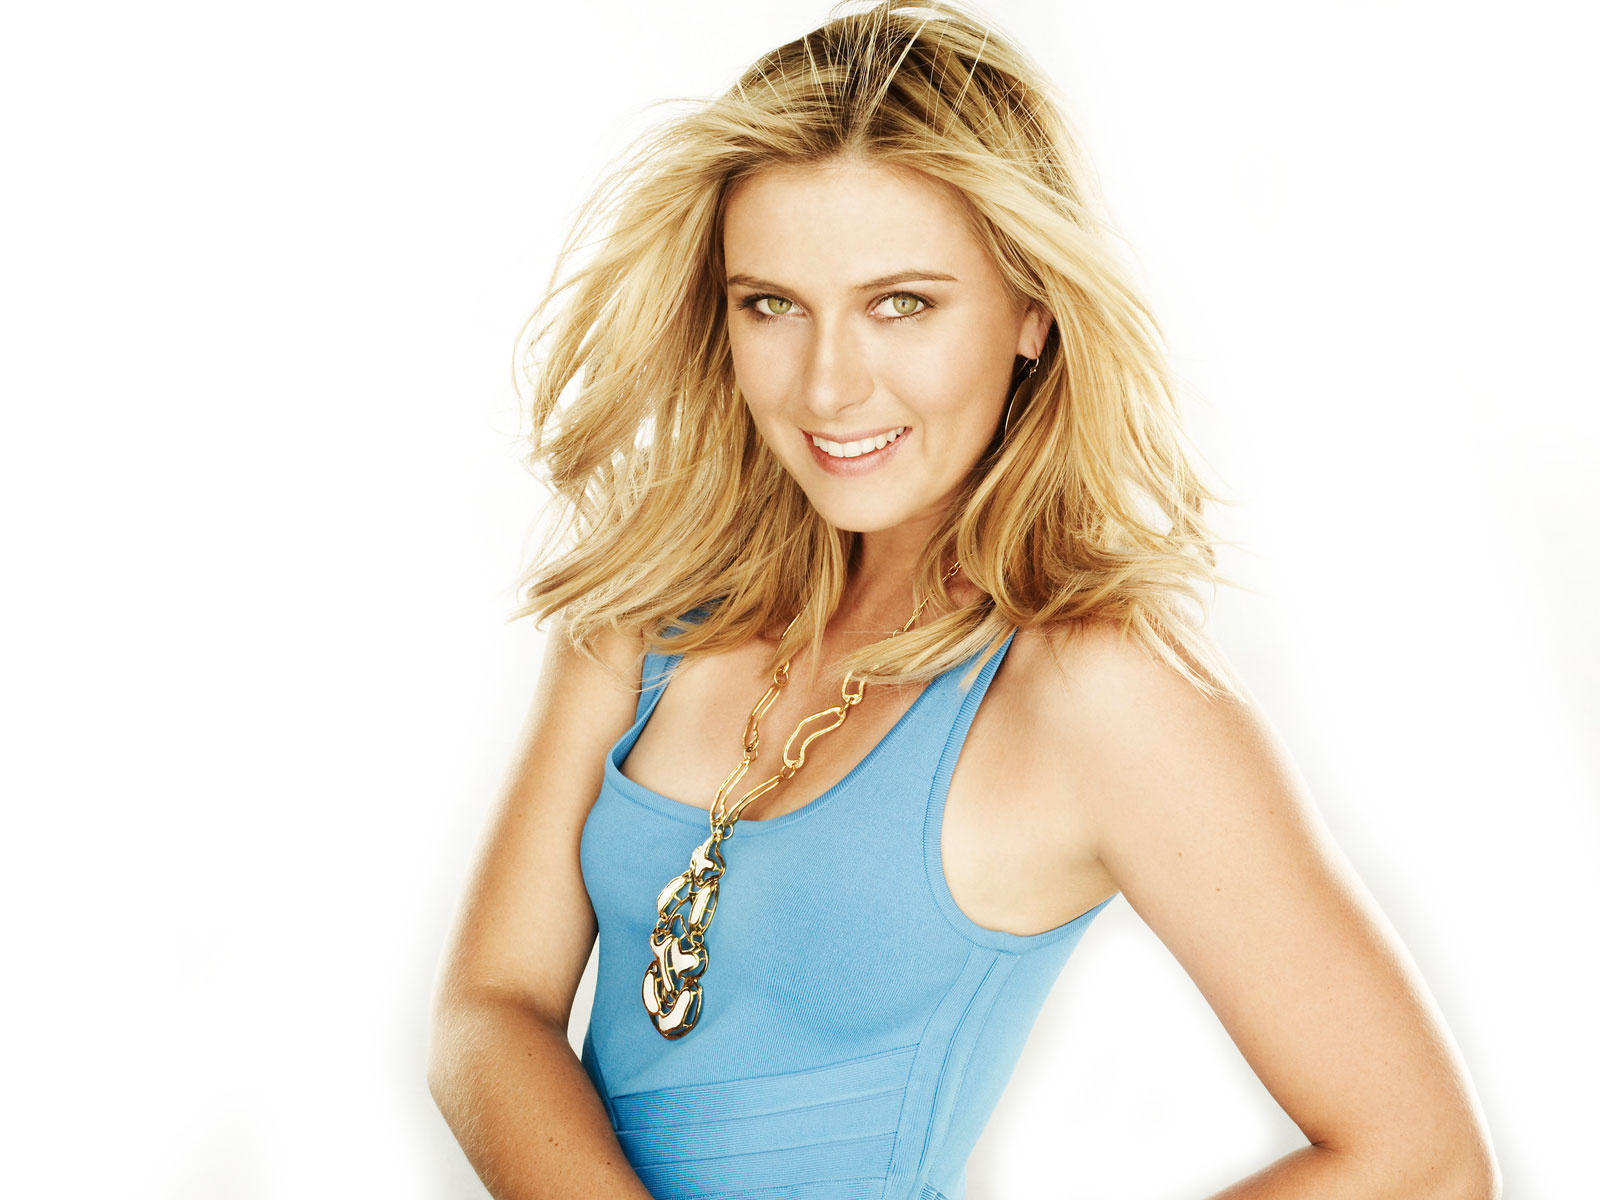 Maria Sharapova 7 wallpaper